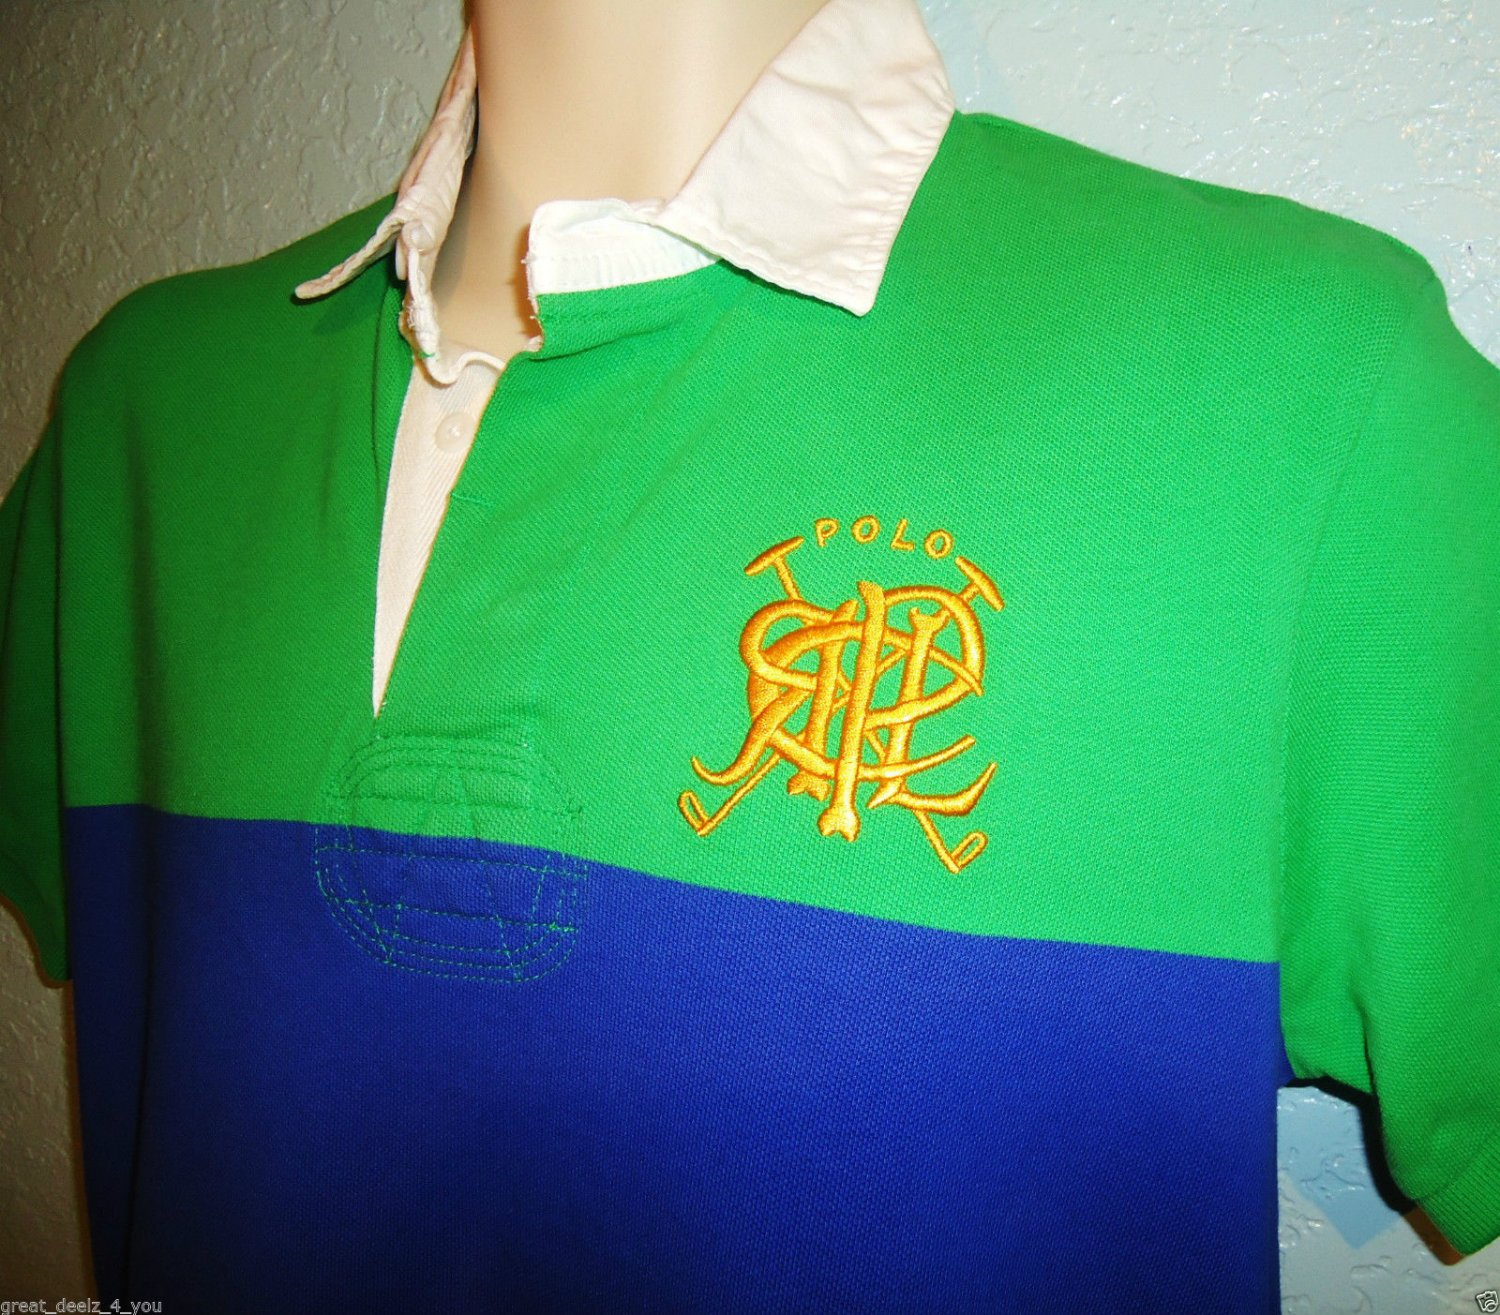 RALPH LAUREN - M - GREEN - BLUE - RUGBY - POLO - SHIRT - NEW - CUSTOM FIT - RRL